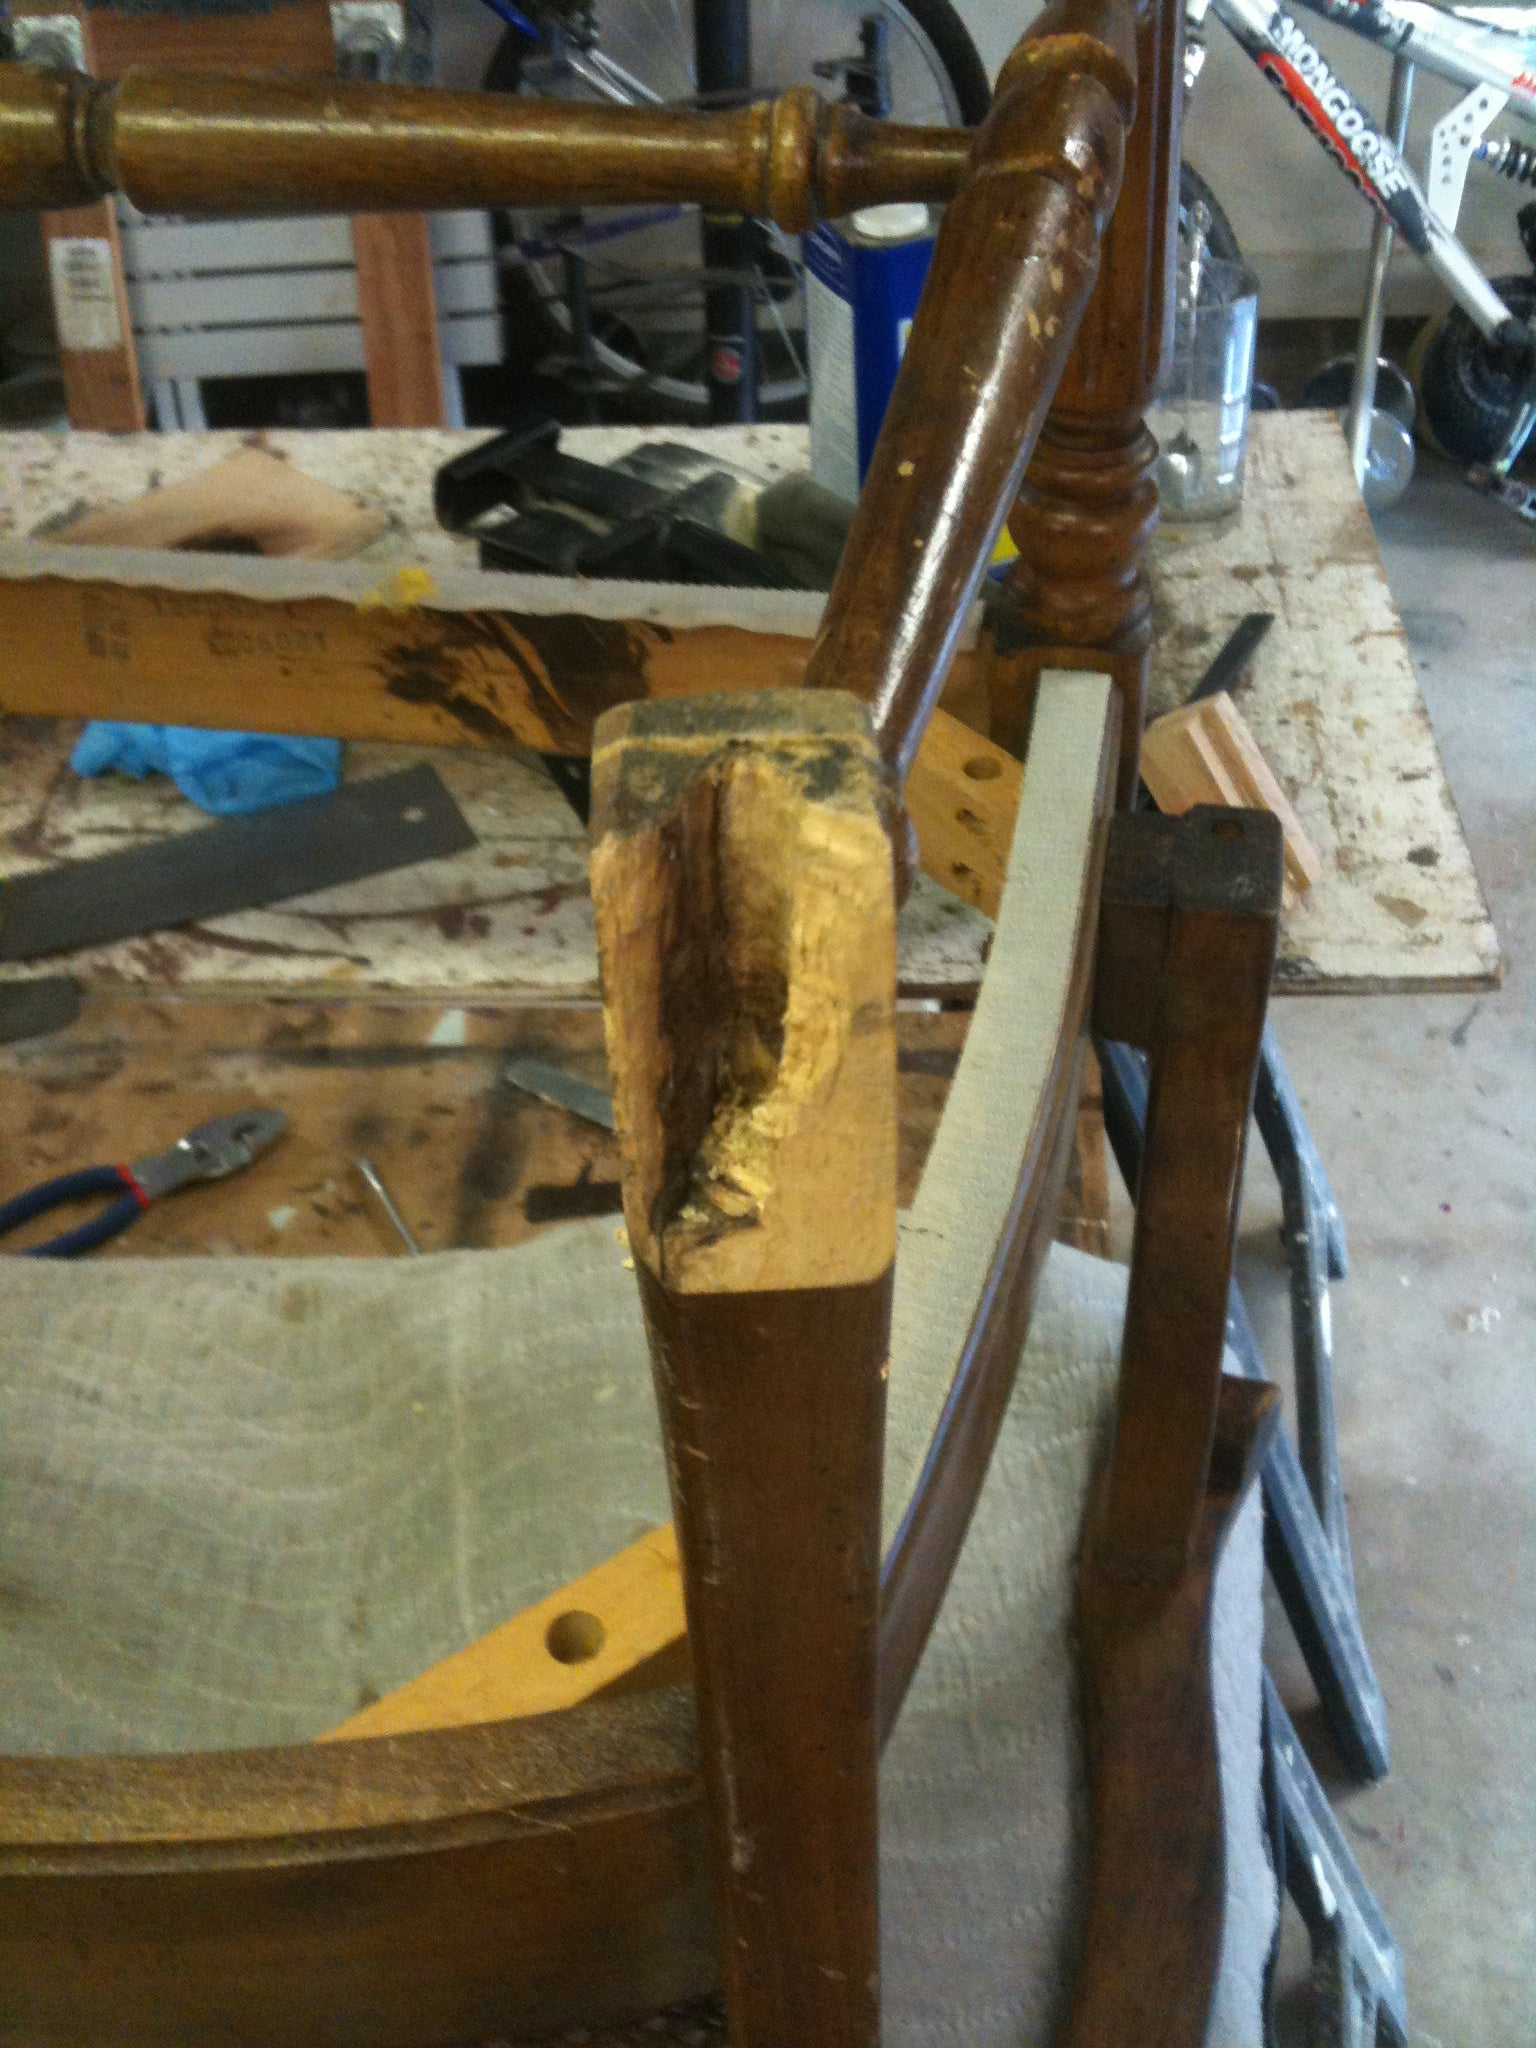 How to Fix a Broken Chair Foot : 8 Steps - Instructables